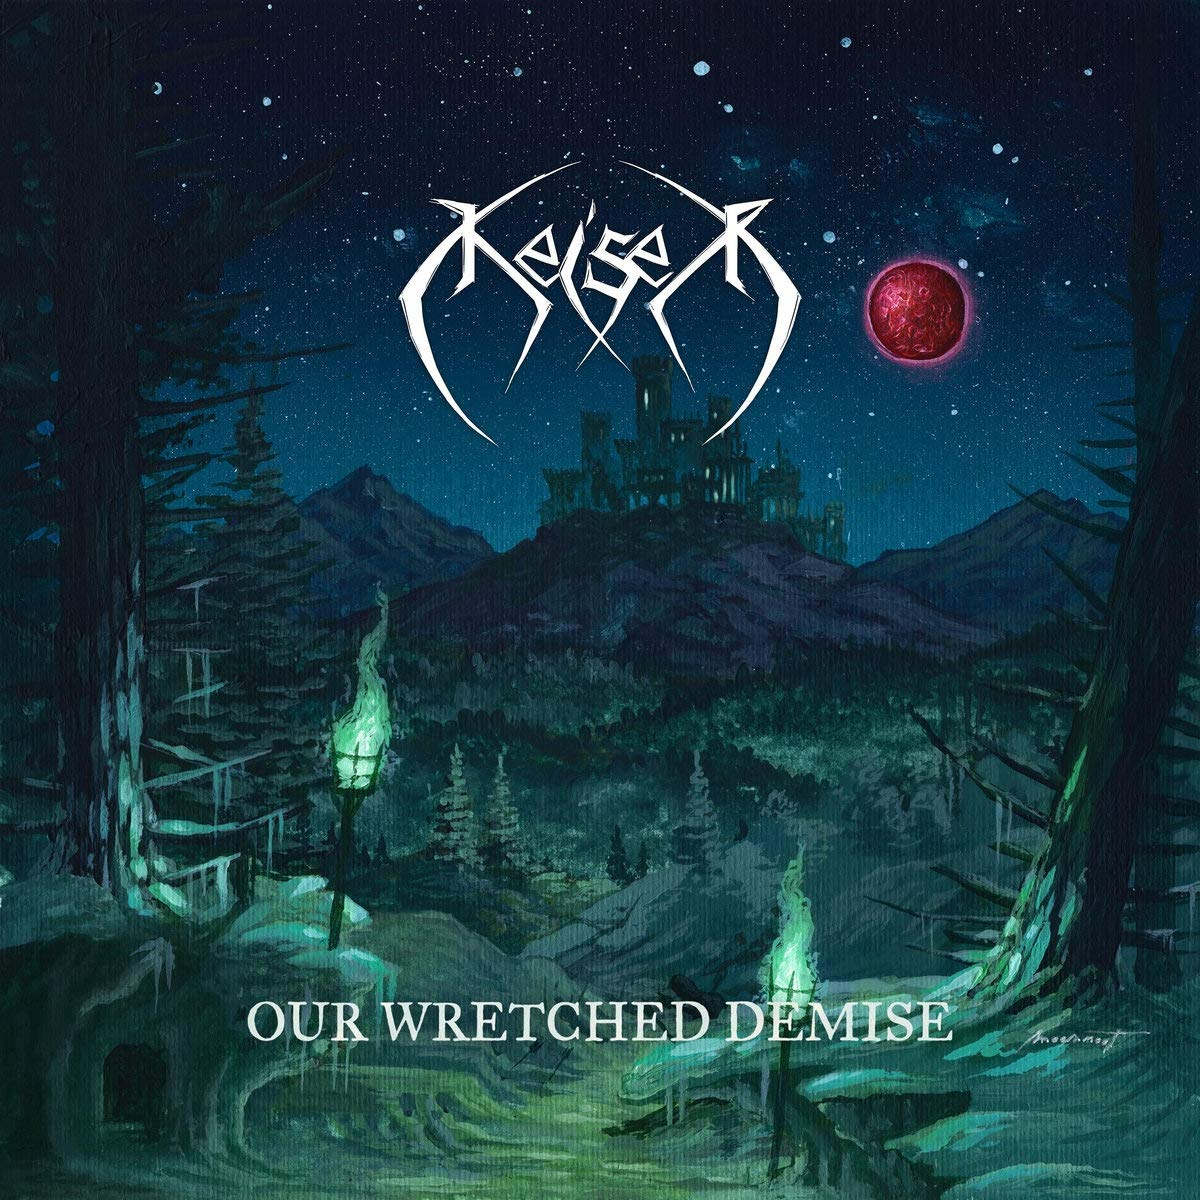 Keiser - Our Wretched Demise (2020) [FLAC] Download